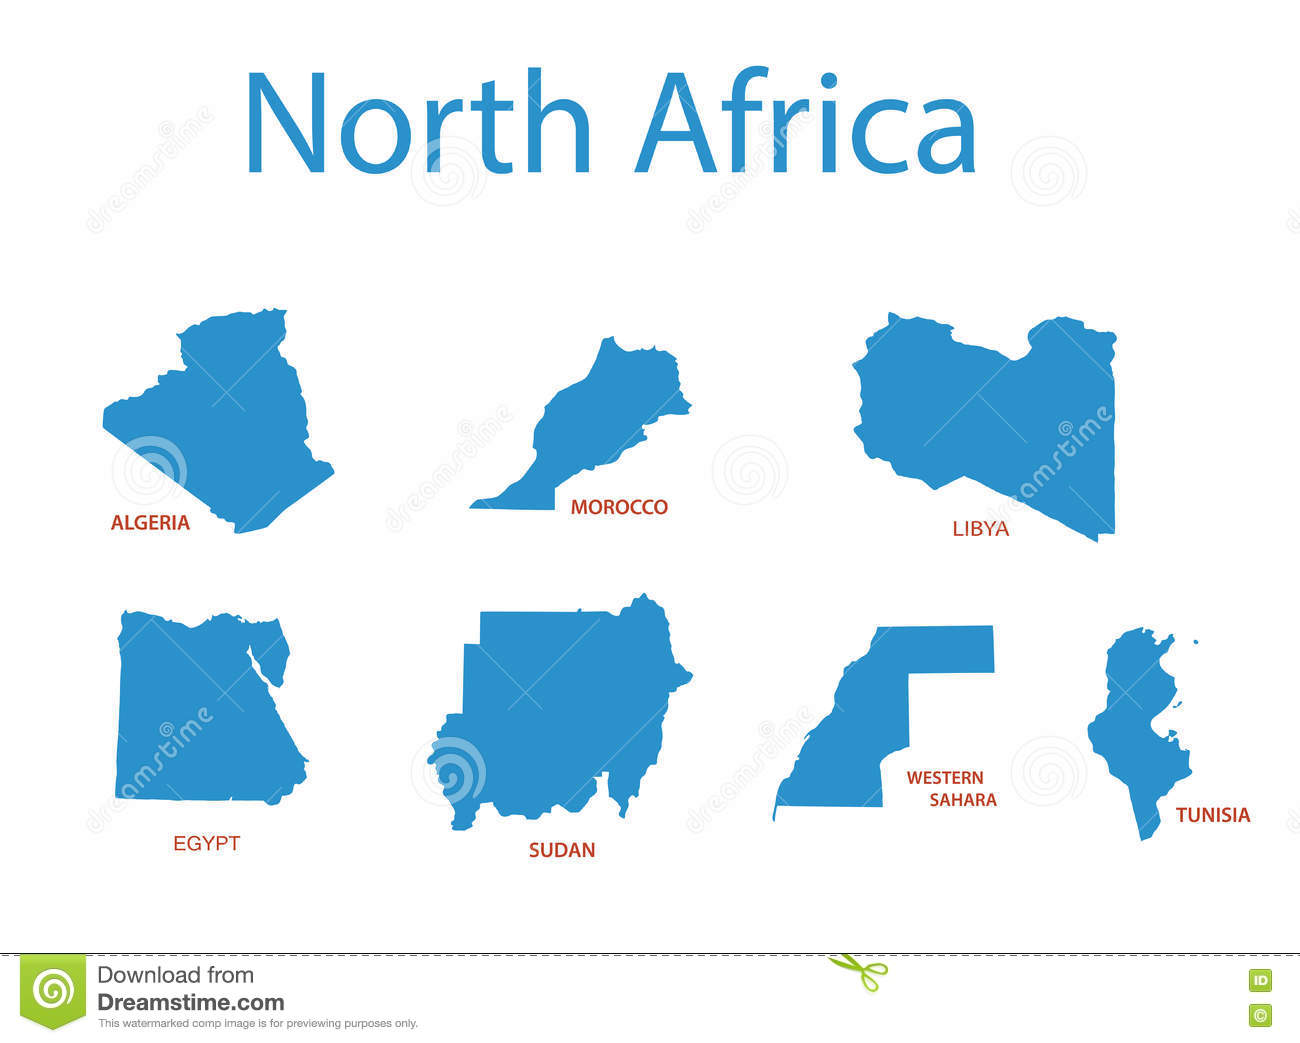 Tunisia North Africa Map.North Africa Maps Of Territories Vector Stock Vector